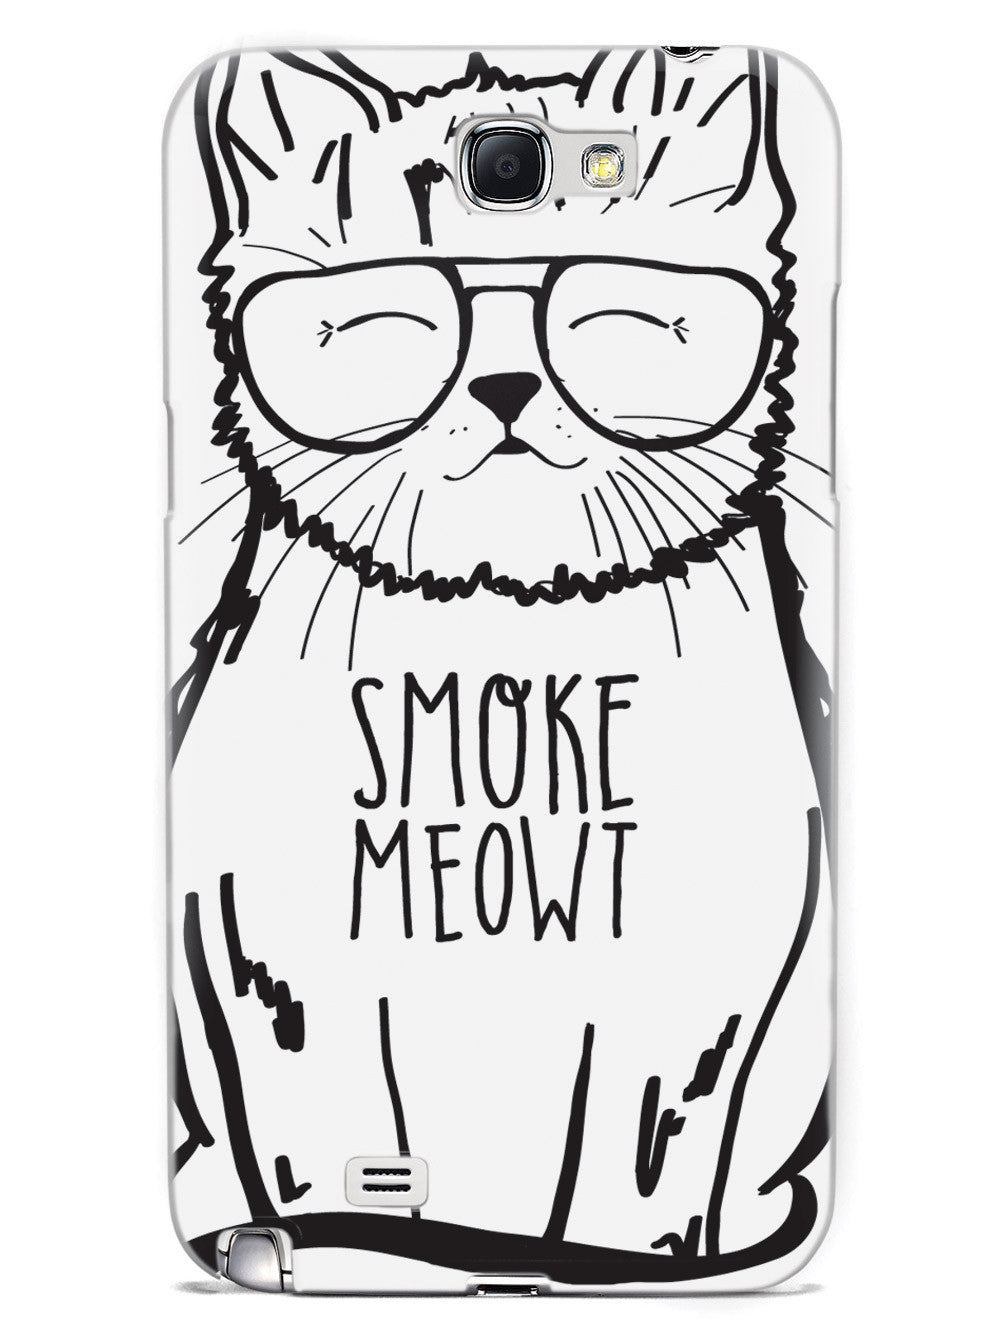 Smoke Meowt - Stoner Cat Case